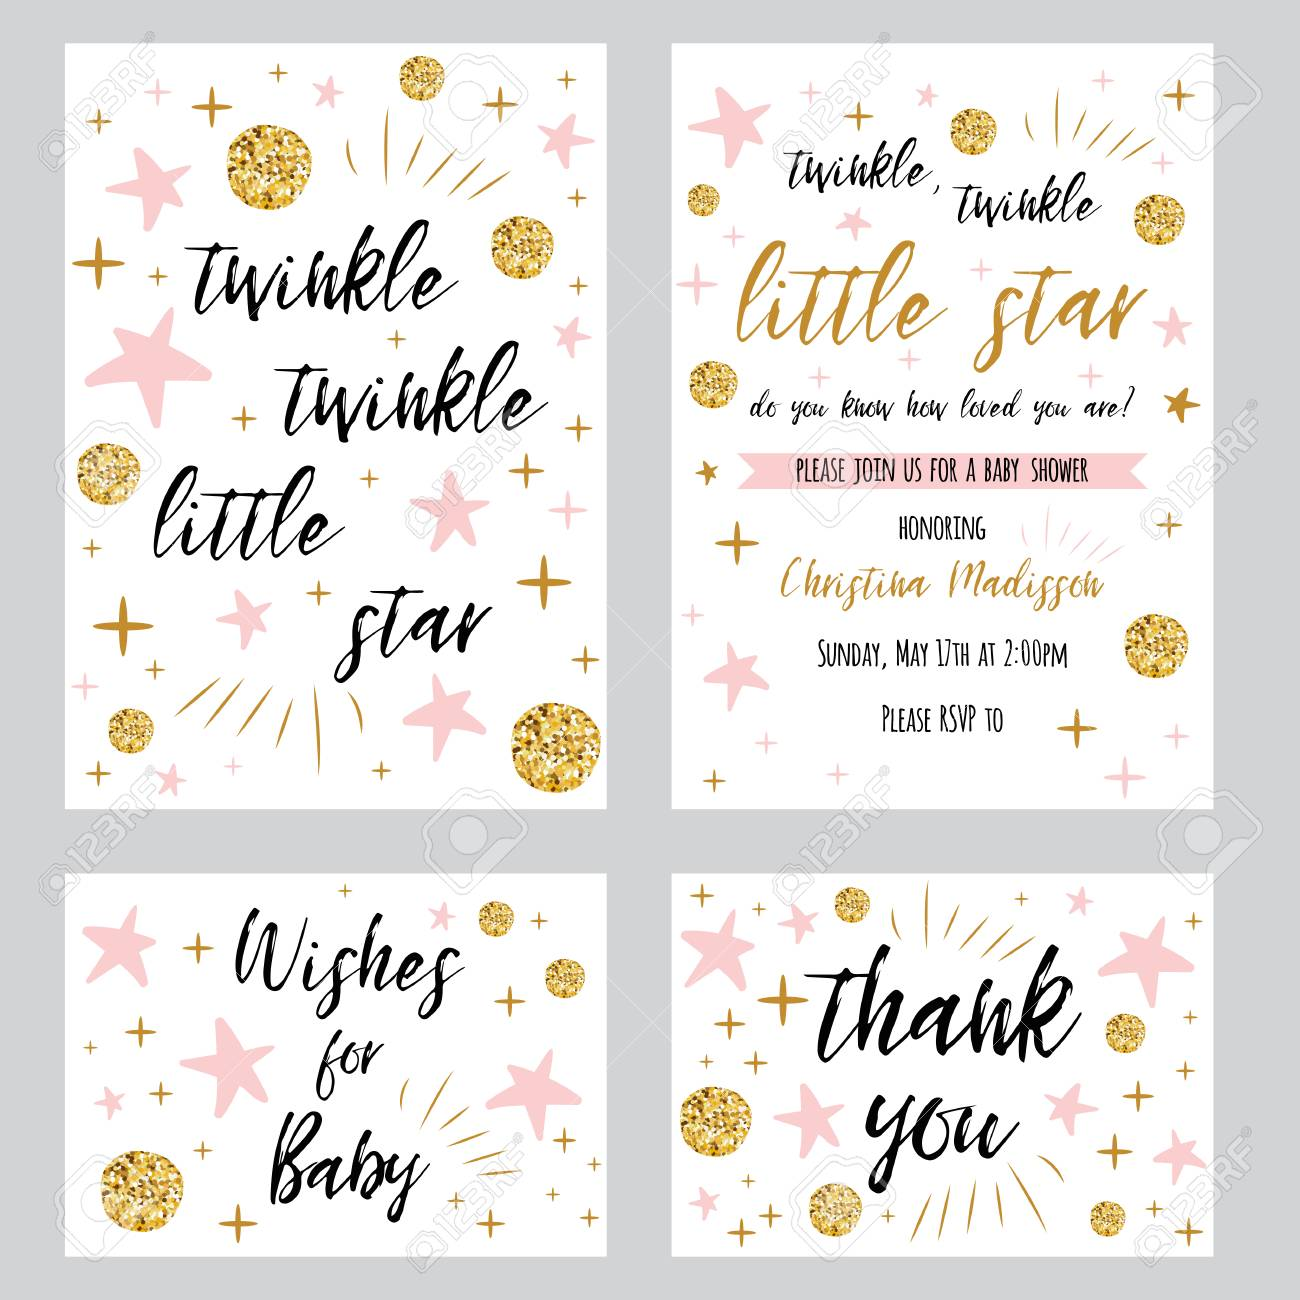 twinkle twinkle little star text with cute gold pink colors